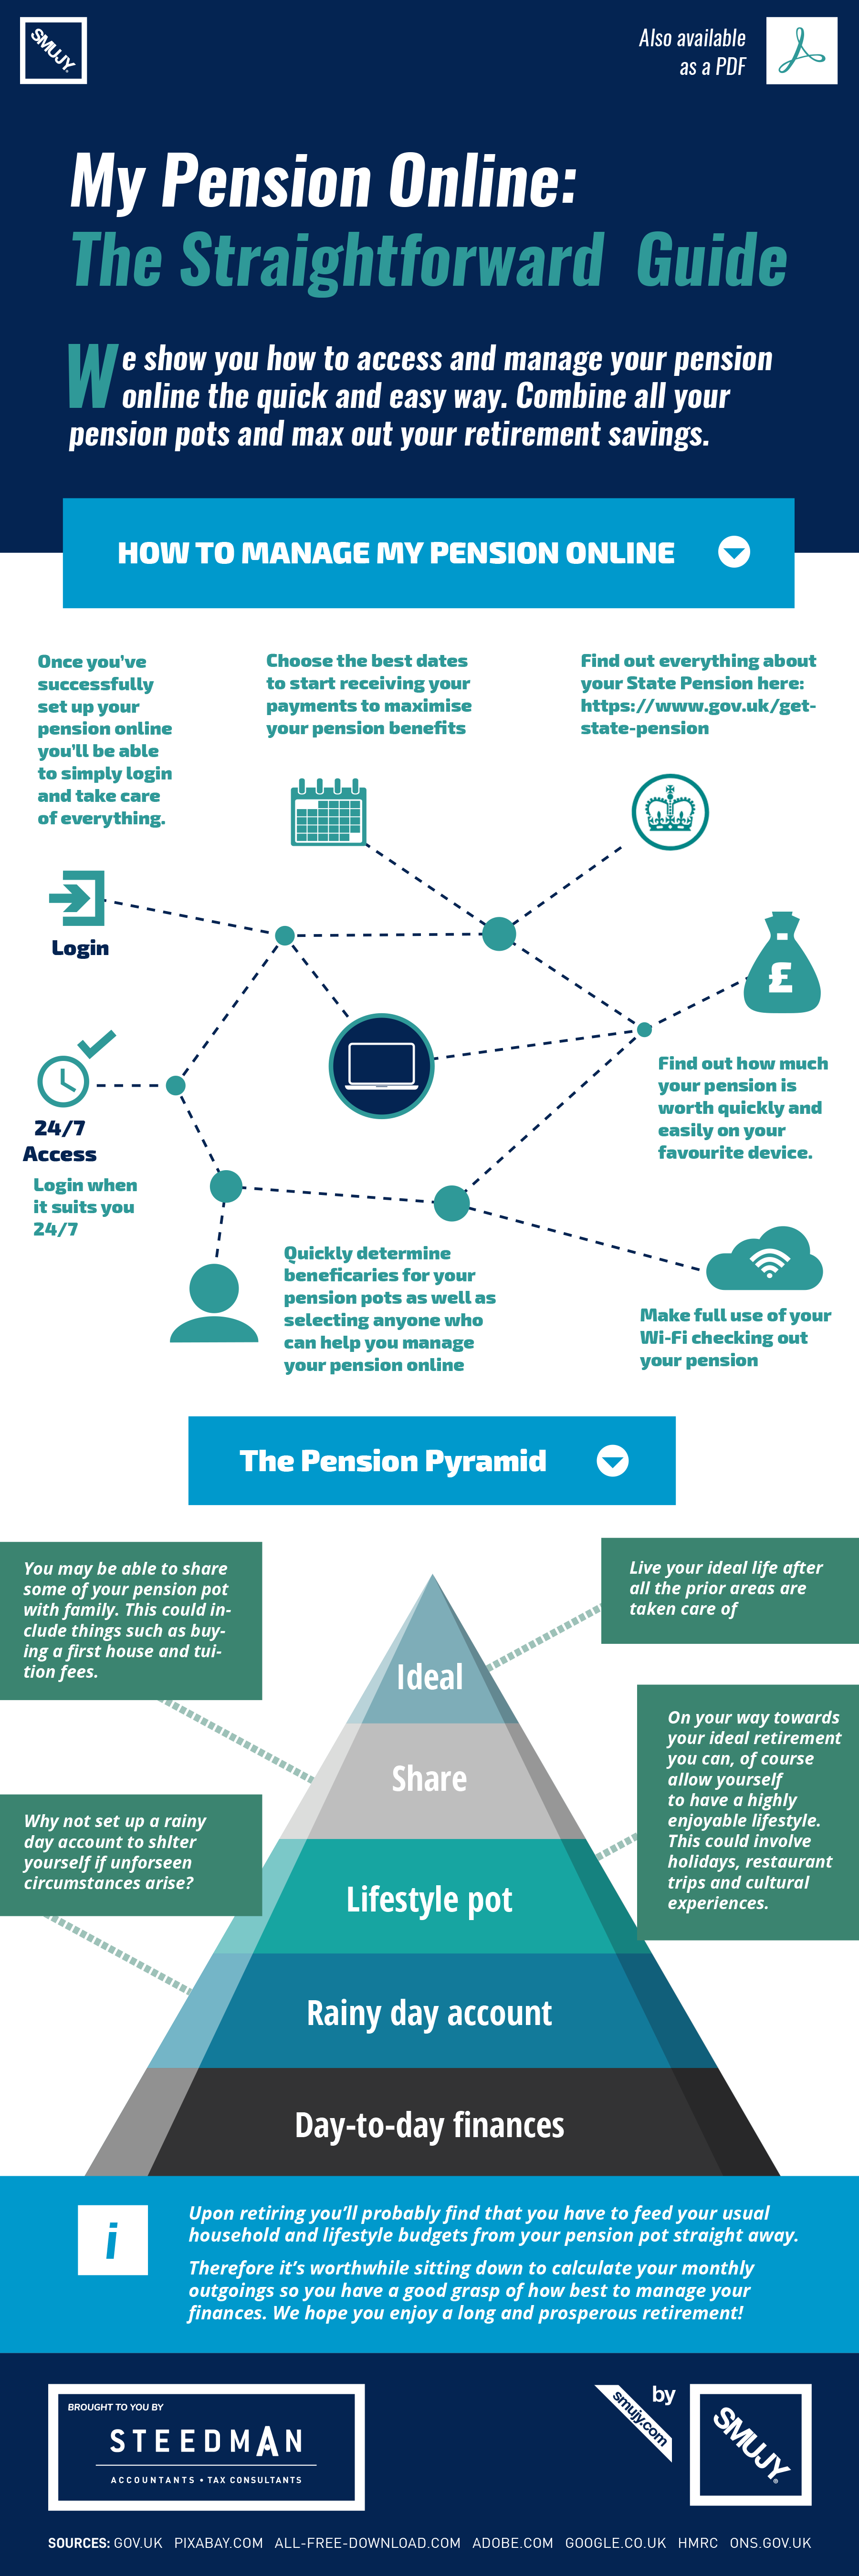 My Pension Online Infographic Steedman Accountant Edinburgh